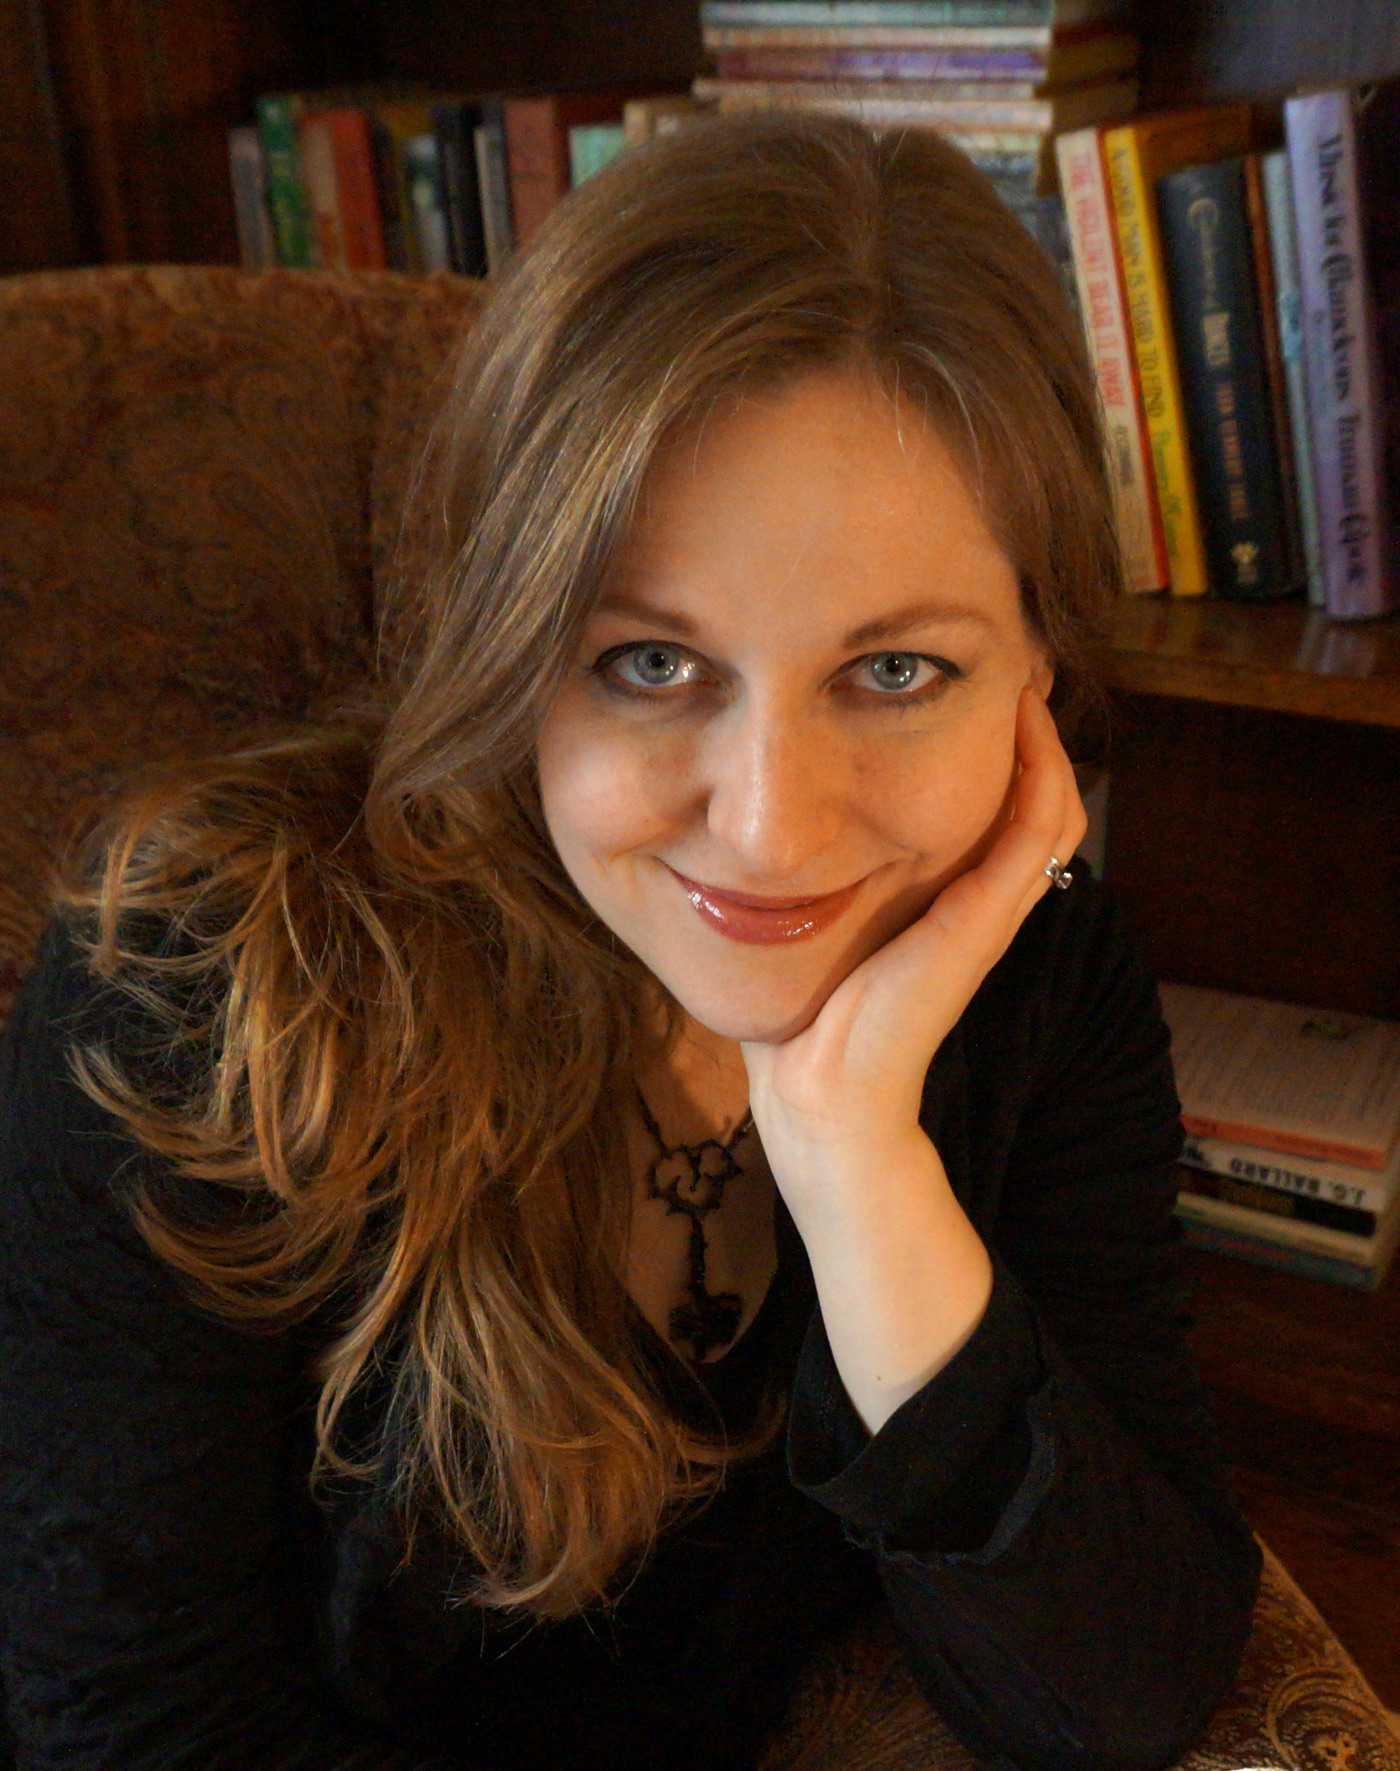 jacqueline west author of the books of elsewhere and dreamers often lie